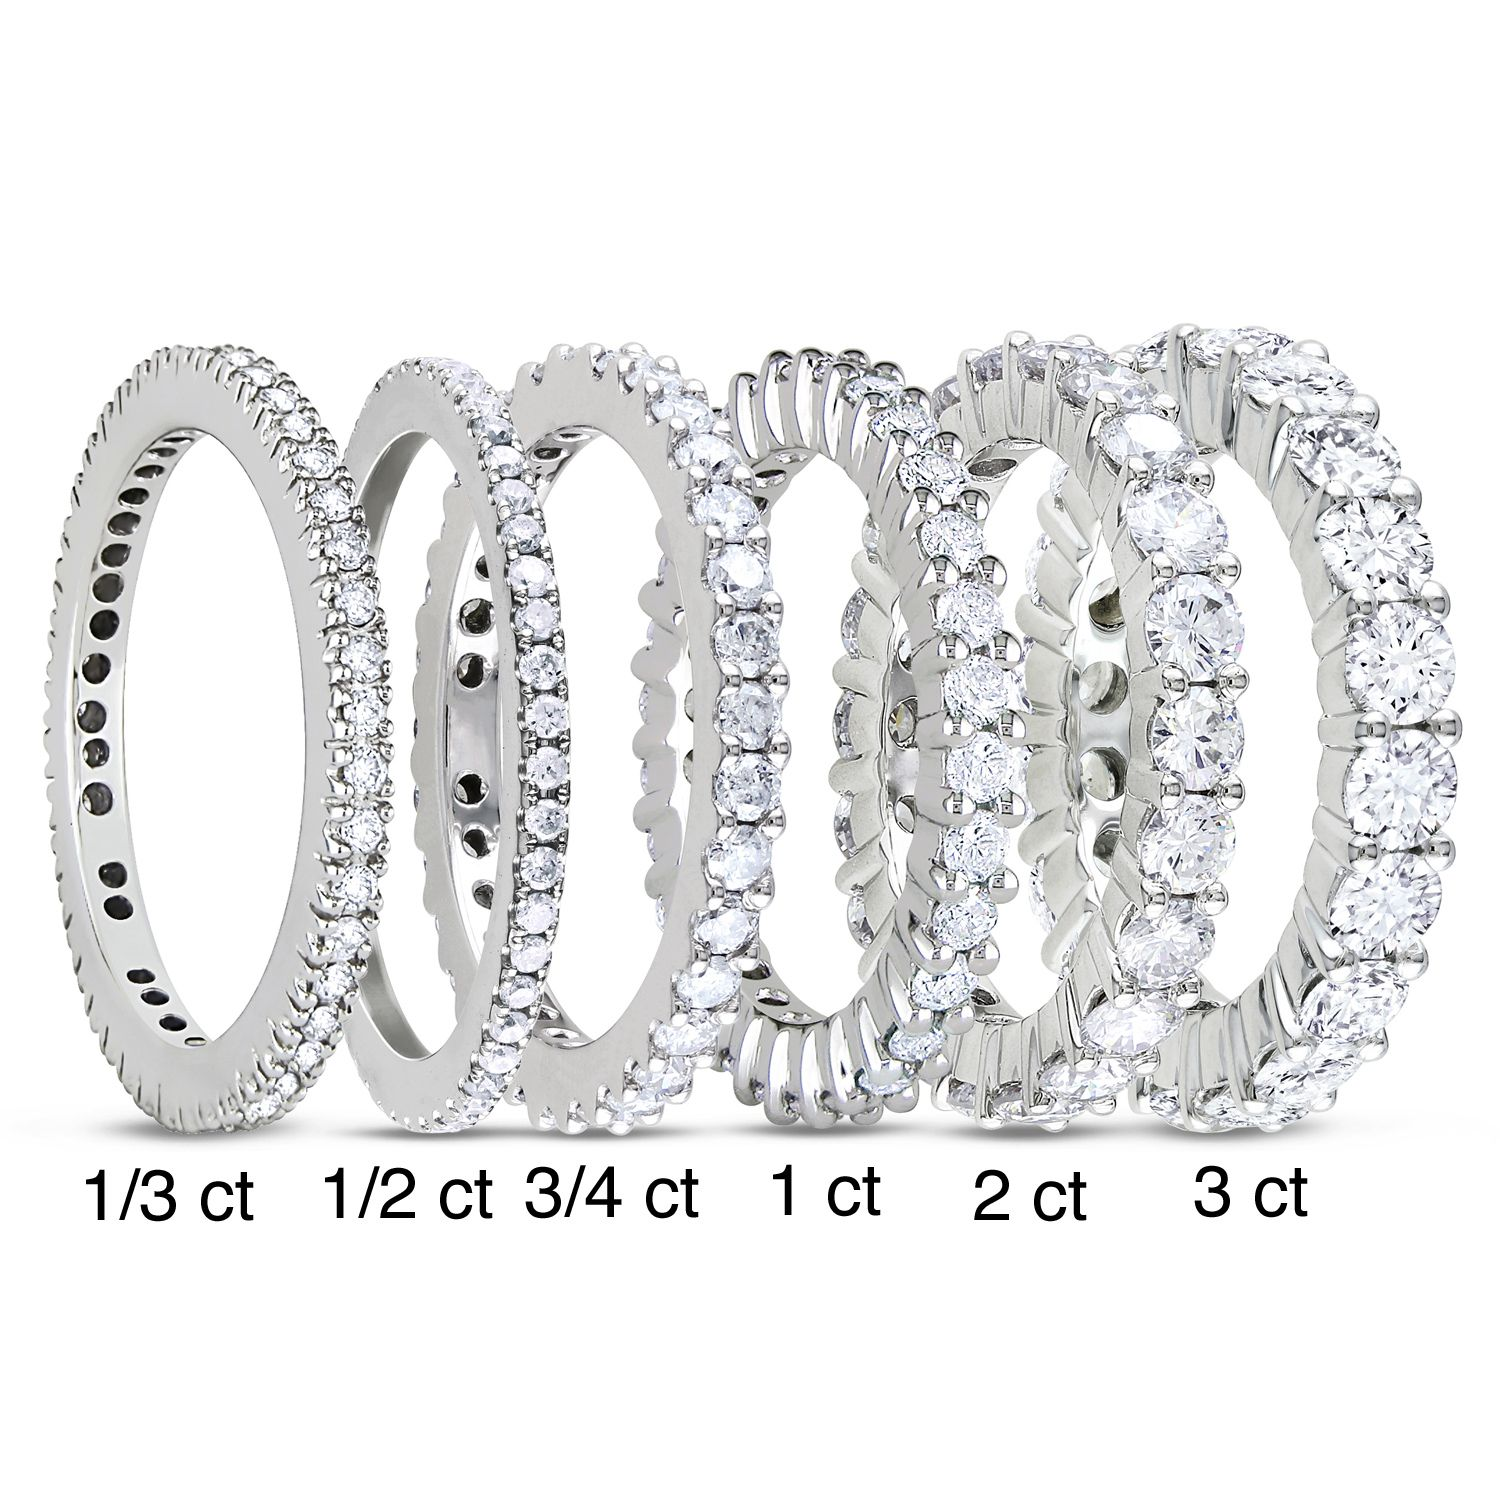 wise band my anniversary jewelry will occasions bands article replace gifts wedding